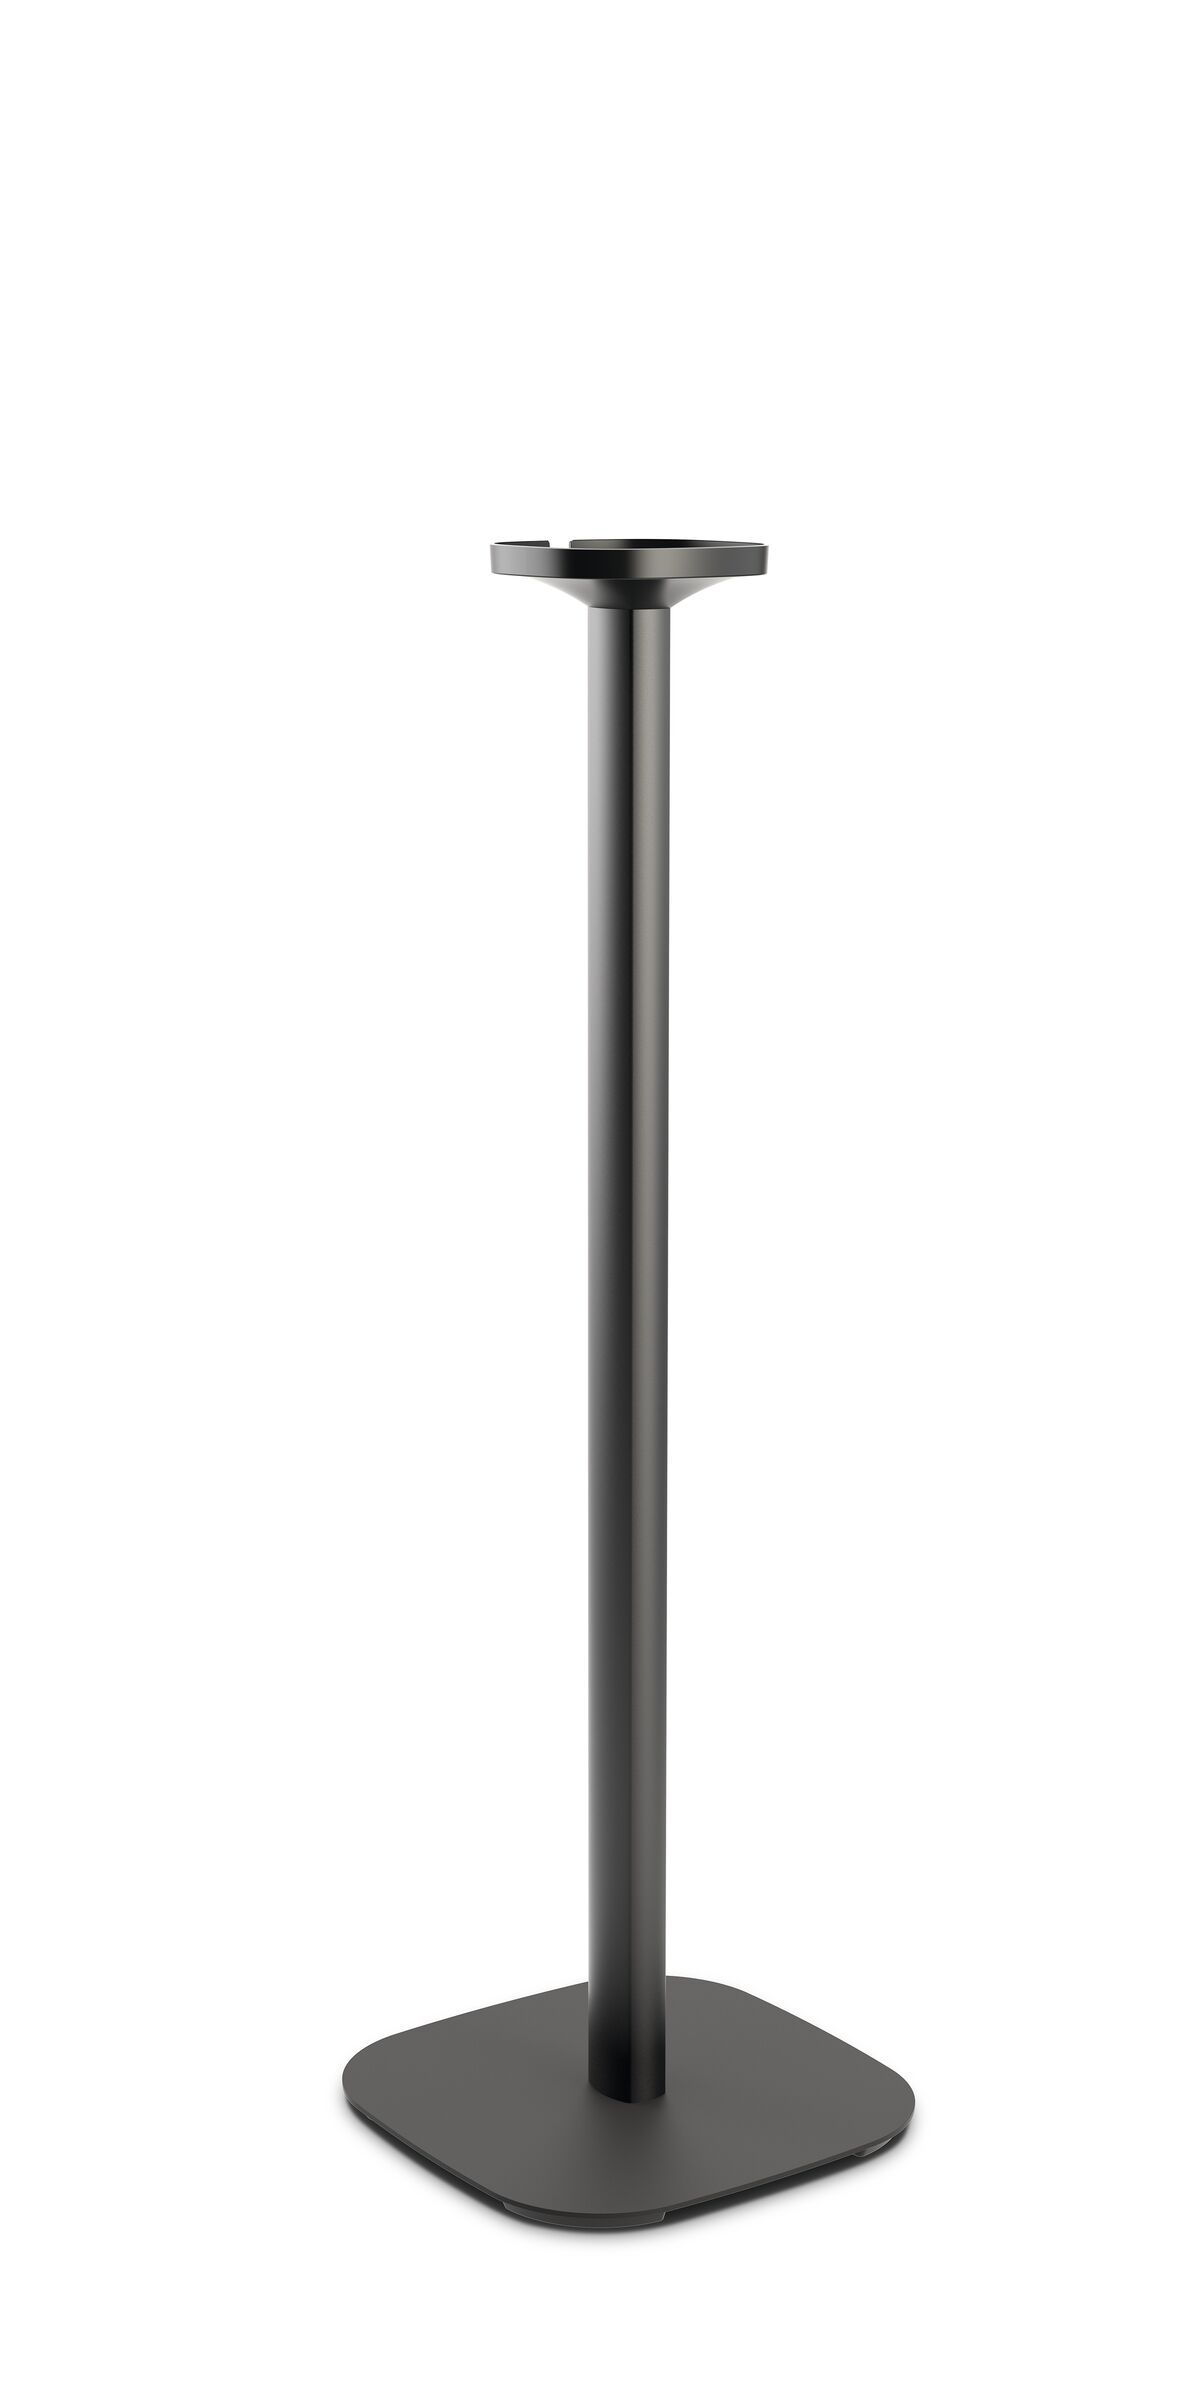 Vogel's SOUND 4301 Speaker stand for SONOS ONE (SL) & PLAY:1 (black) - Product